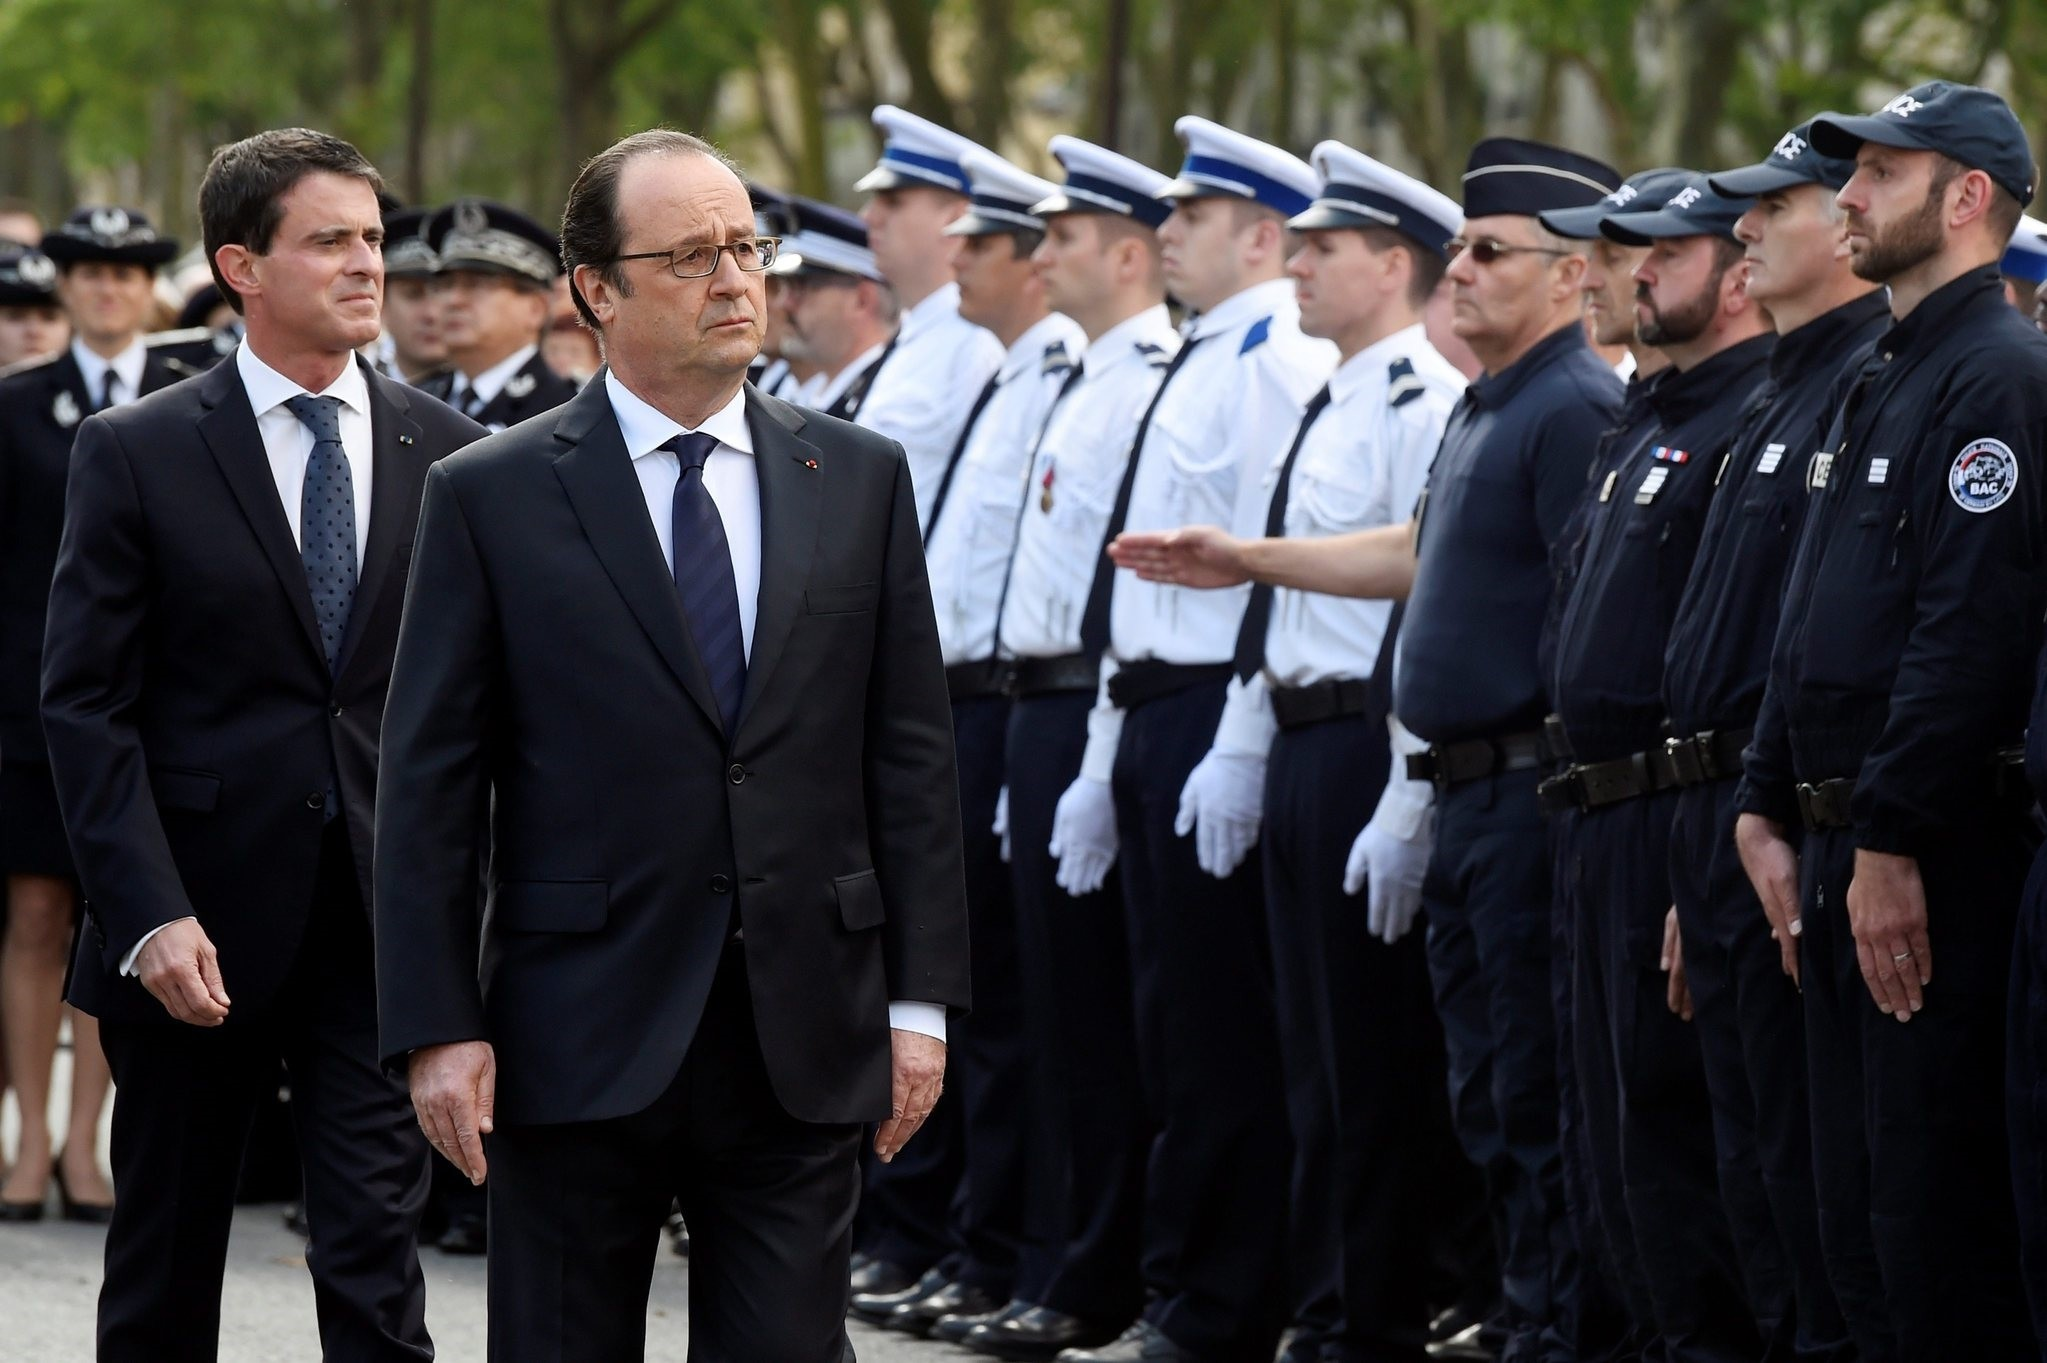 French President Francois Hollande (2nd R) and Prime Minister Manuel Valls (L) attend a memorial ceremony honouring the police couple who were killed by Daesh. (EPA Photo)